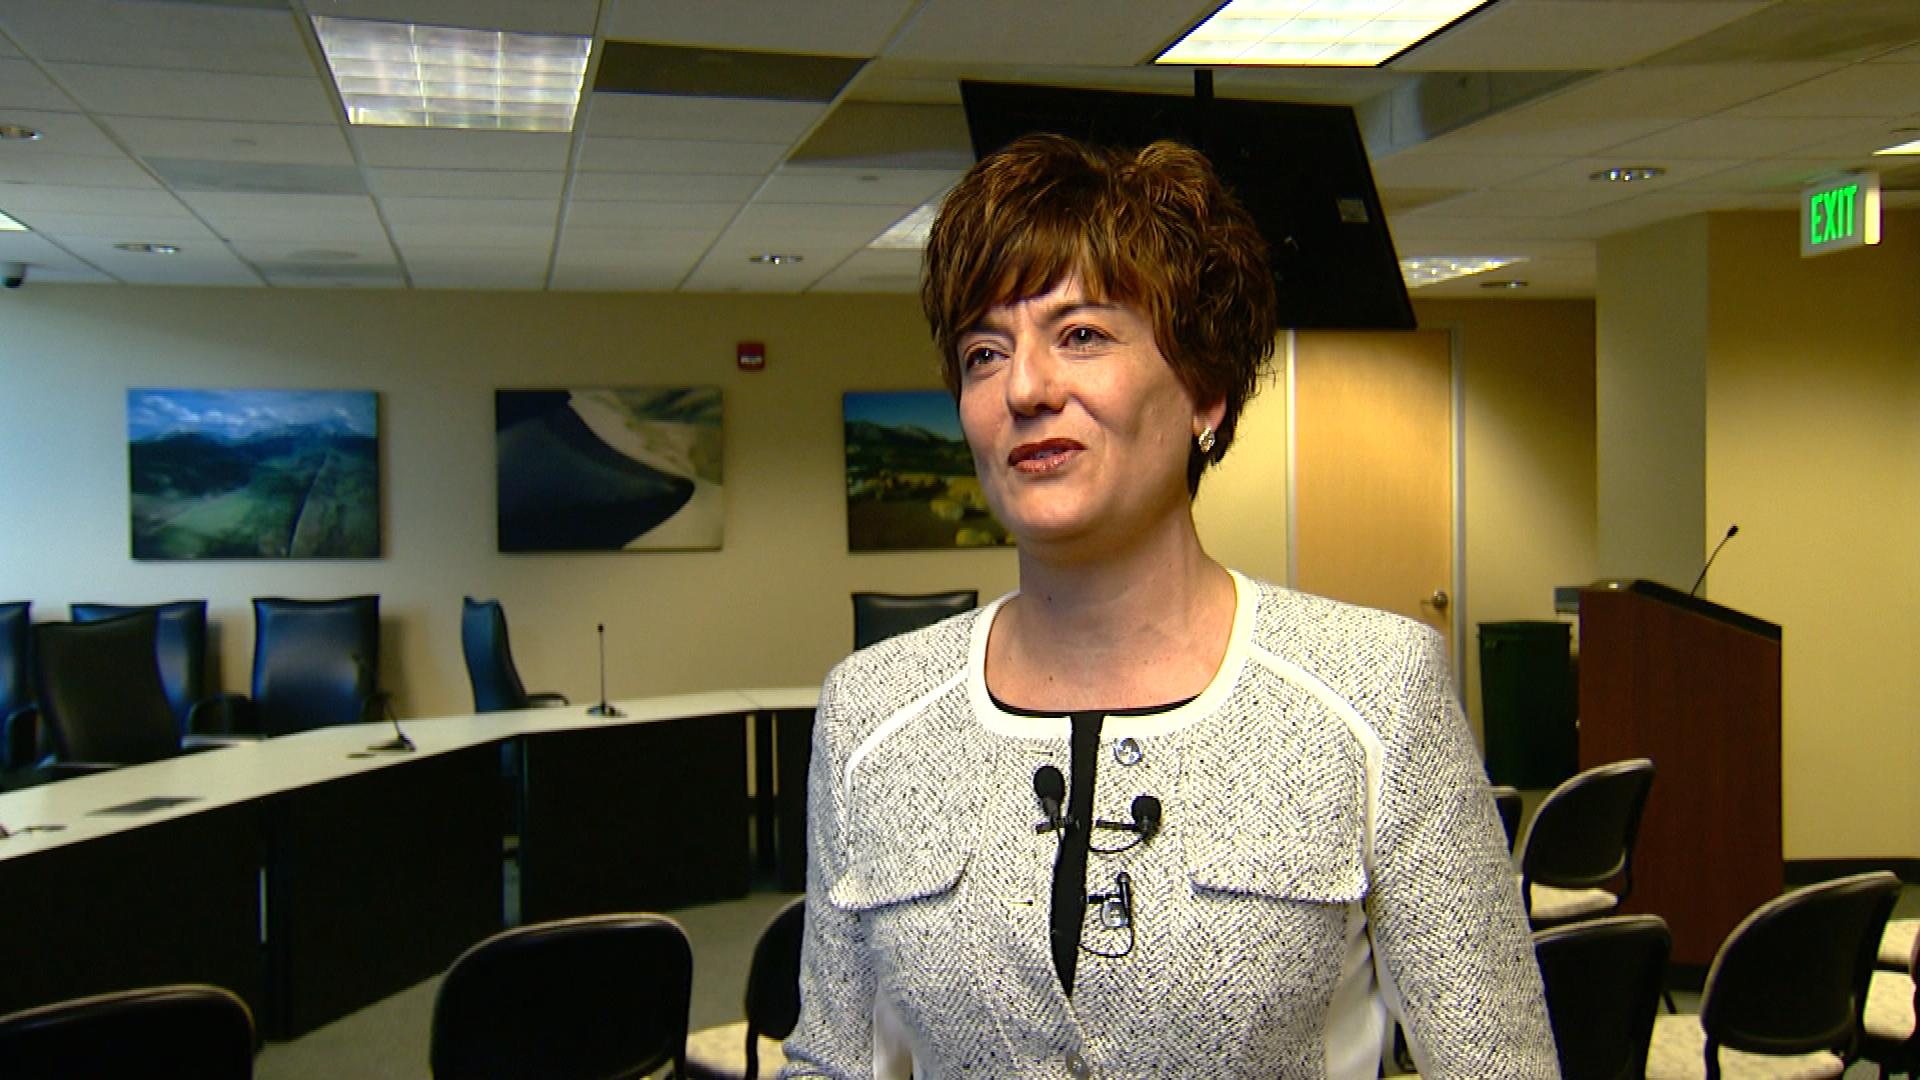 Kelly Brough, head of the Denver Metro Chamber of Commerce (credit: CBS)